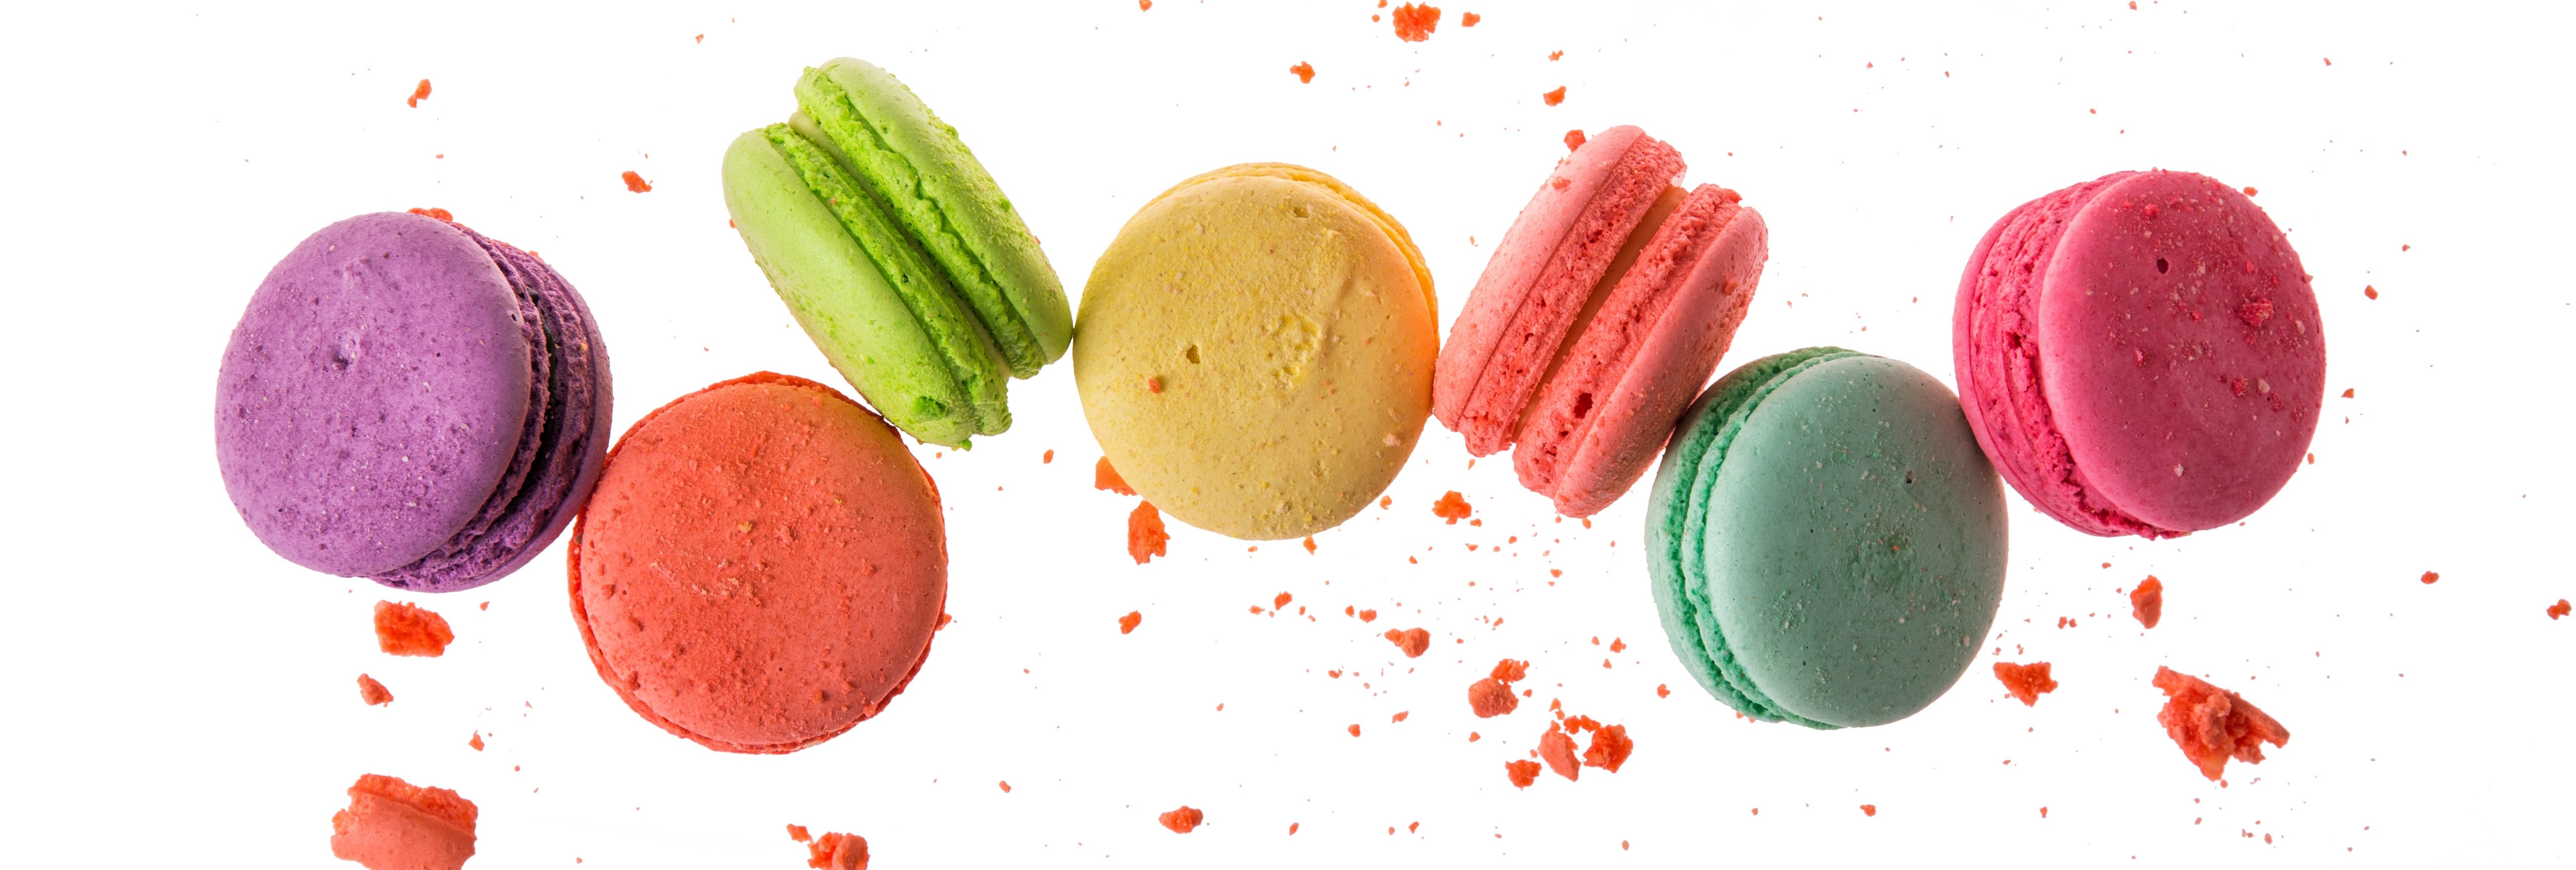 Enchanting Travels France Tours French macaroons isolated on white background. Cookies falls mixed with crumbs